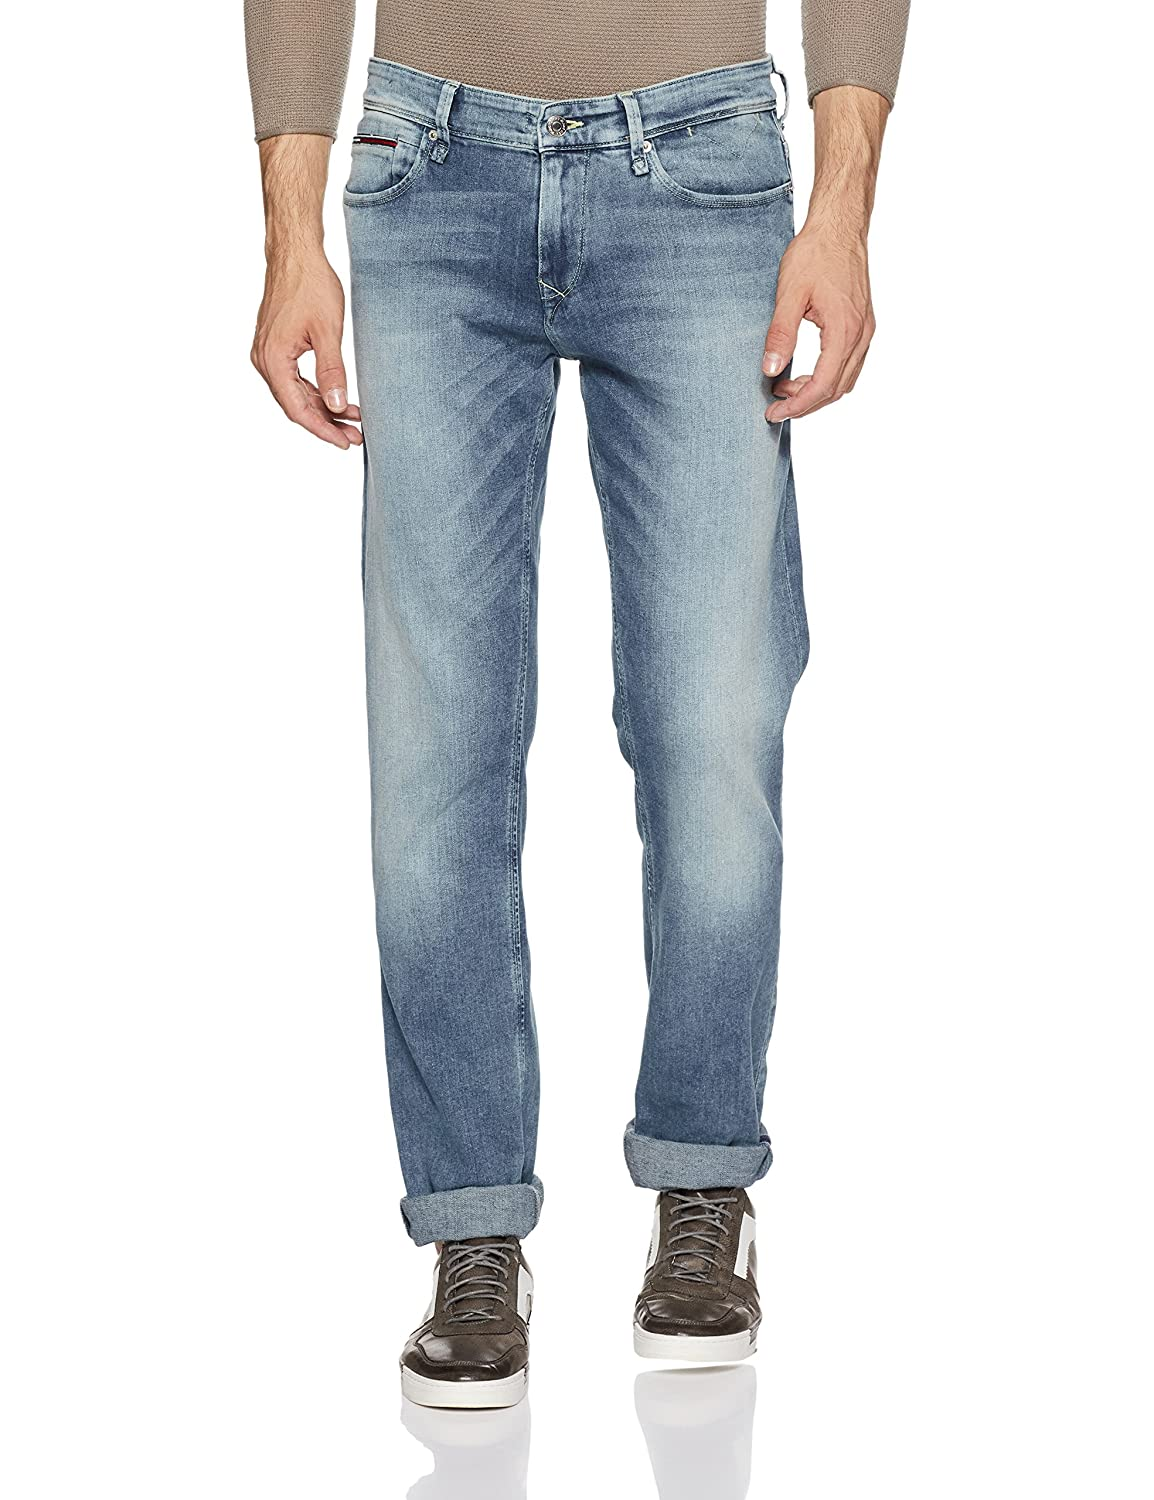 7bd9f41b824236 Tommy Hilfiger Men s Skinny Fit Jeans  Amazon.in  Clothing   Accessories